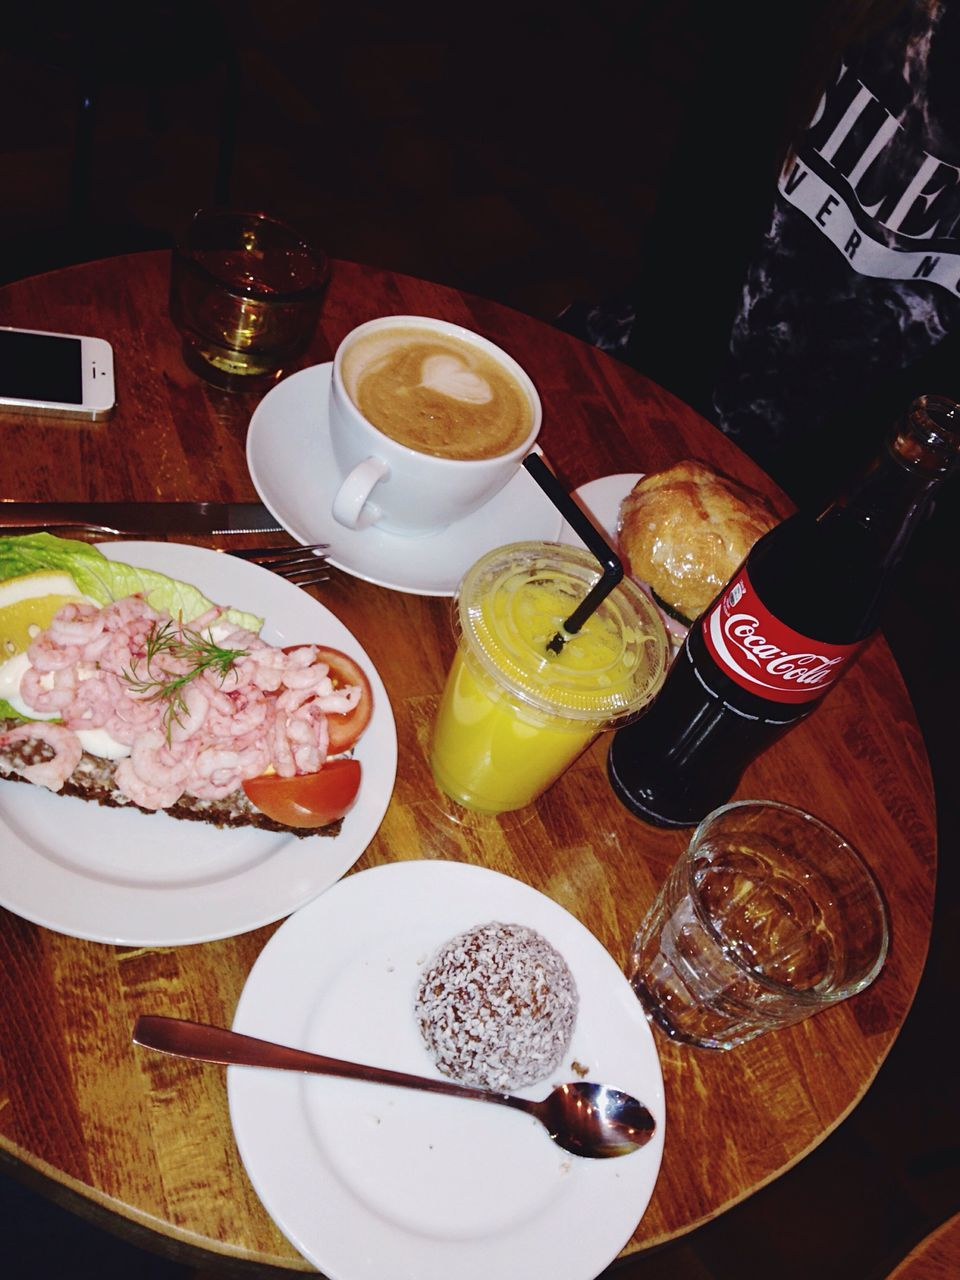 food and drink, table, plate, food, freshness, drinking glass, refreshment, drink, healthy eating, indoors, serving size, bottle, bowl, fork, no people, ready-to-eat, day, close-up